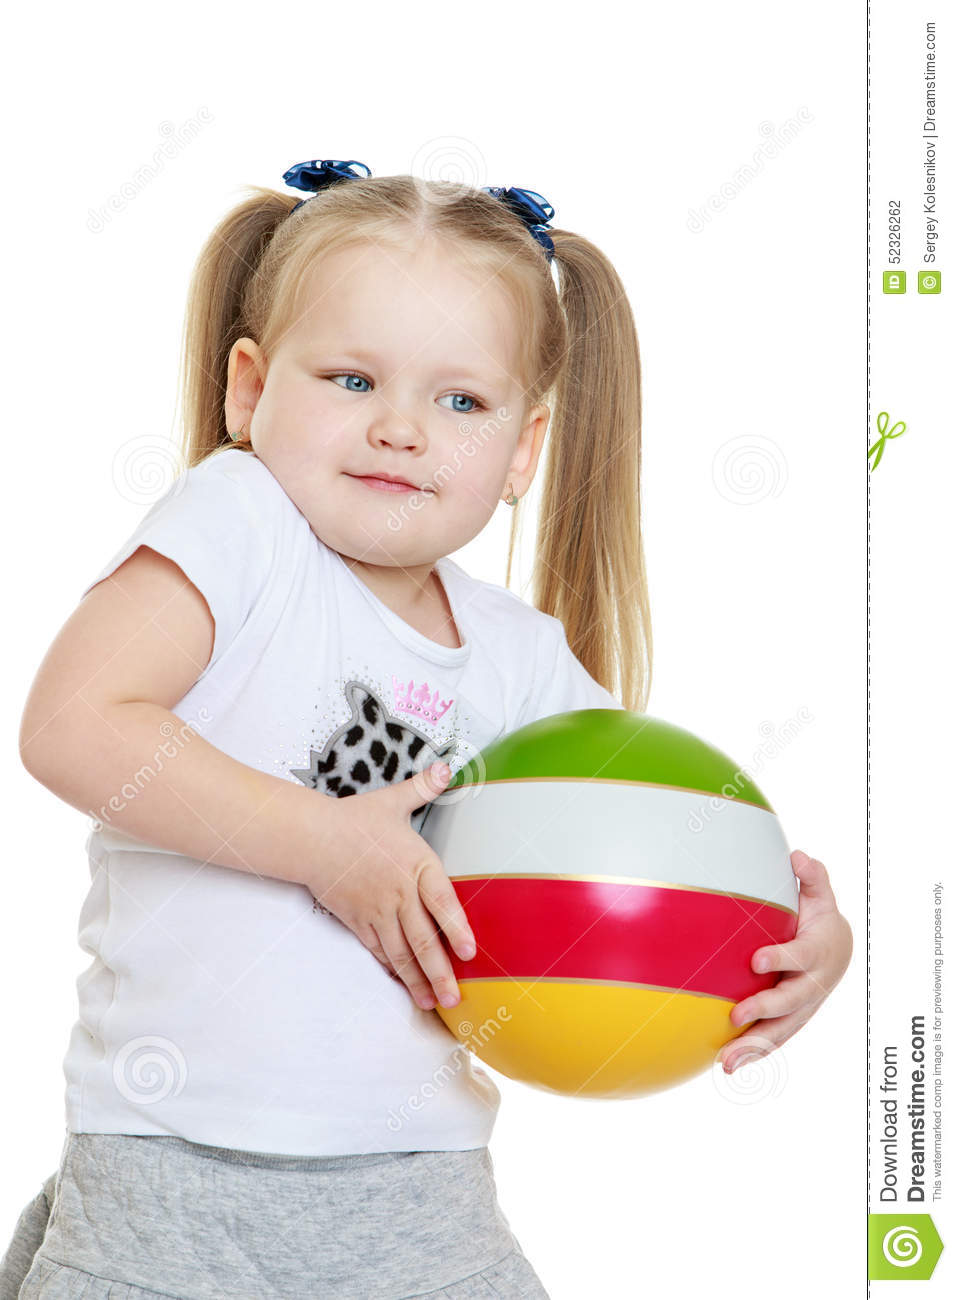 Little Girls Nails And Girls On Pinterest: Beautiful Chubby Little Girl Holding A Ball Stock Photo